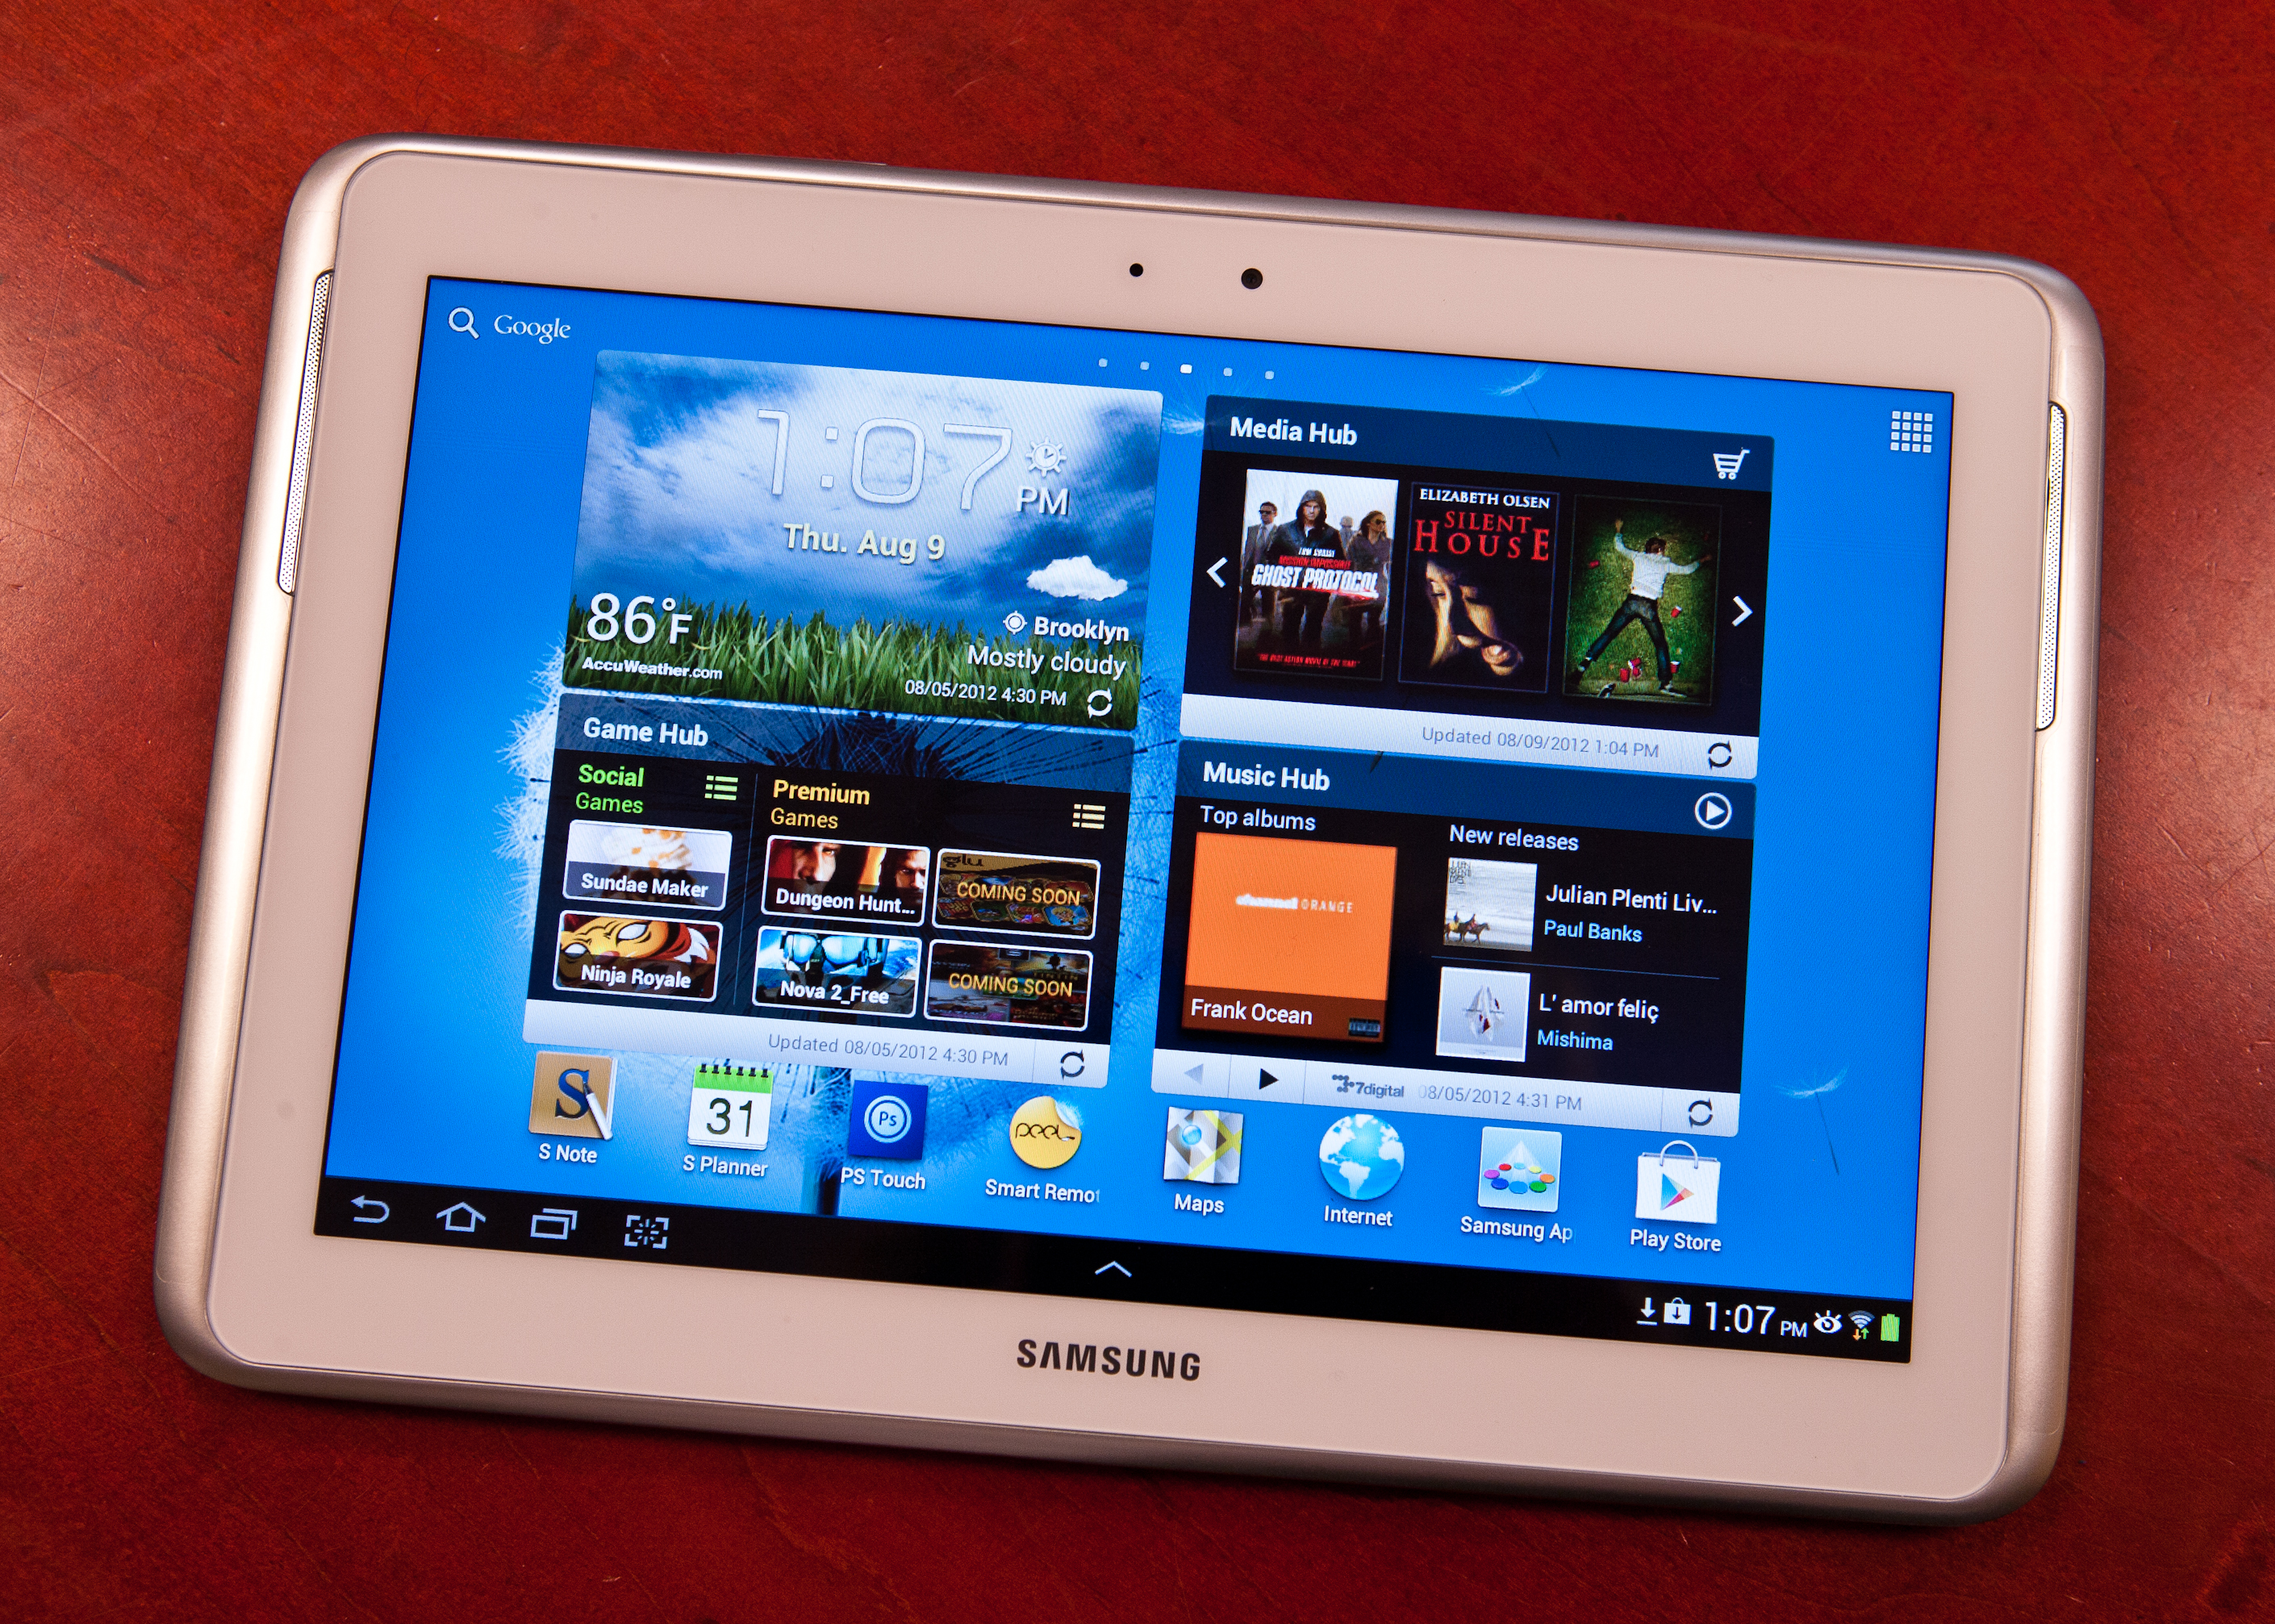 Samsung Galaxy Note 10.1 (32GB)